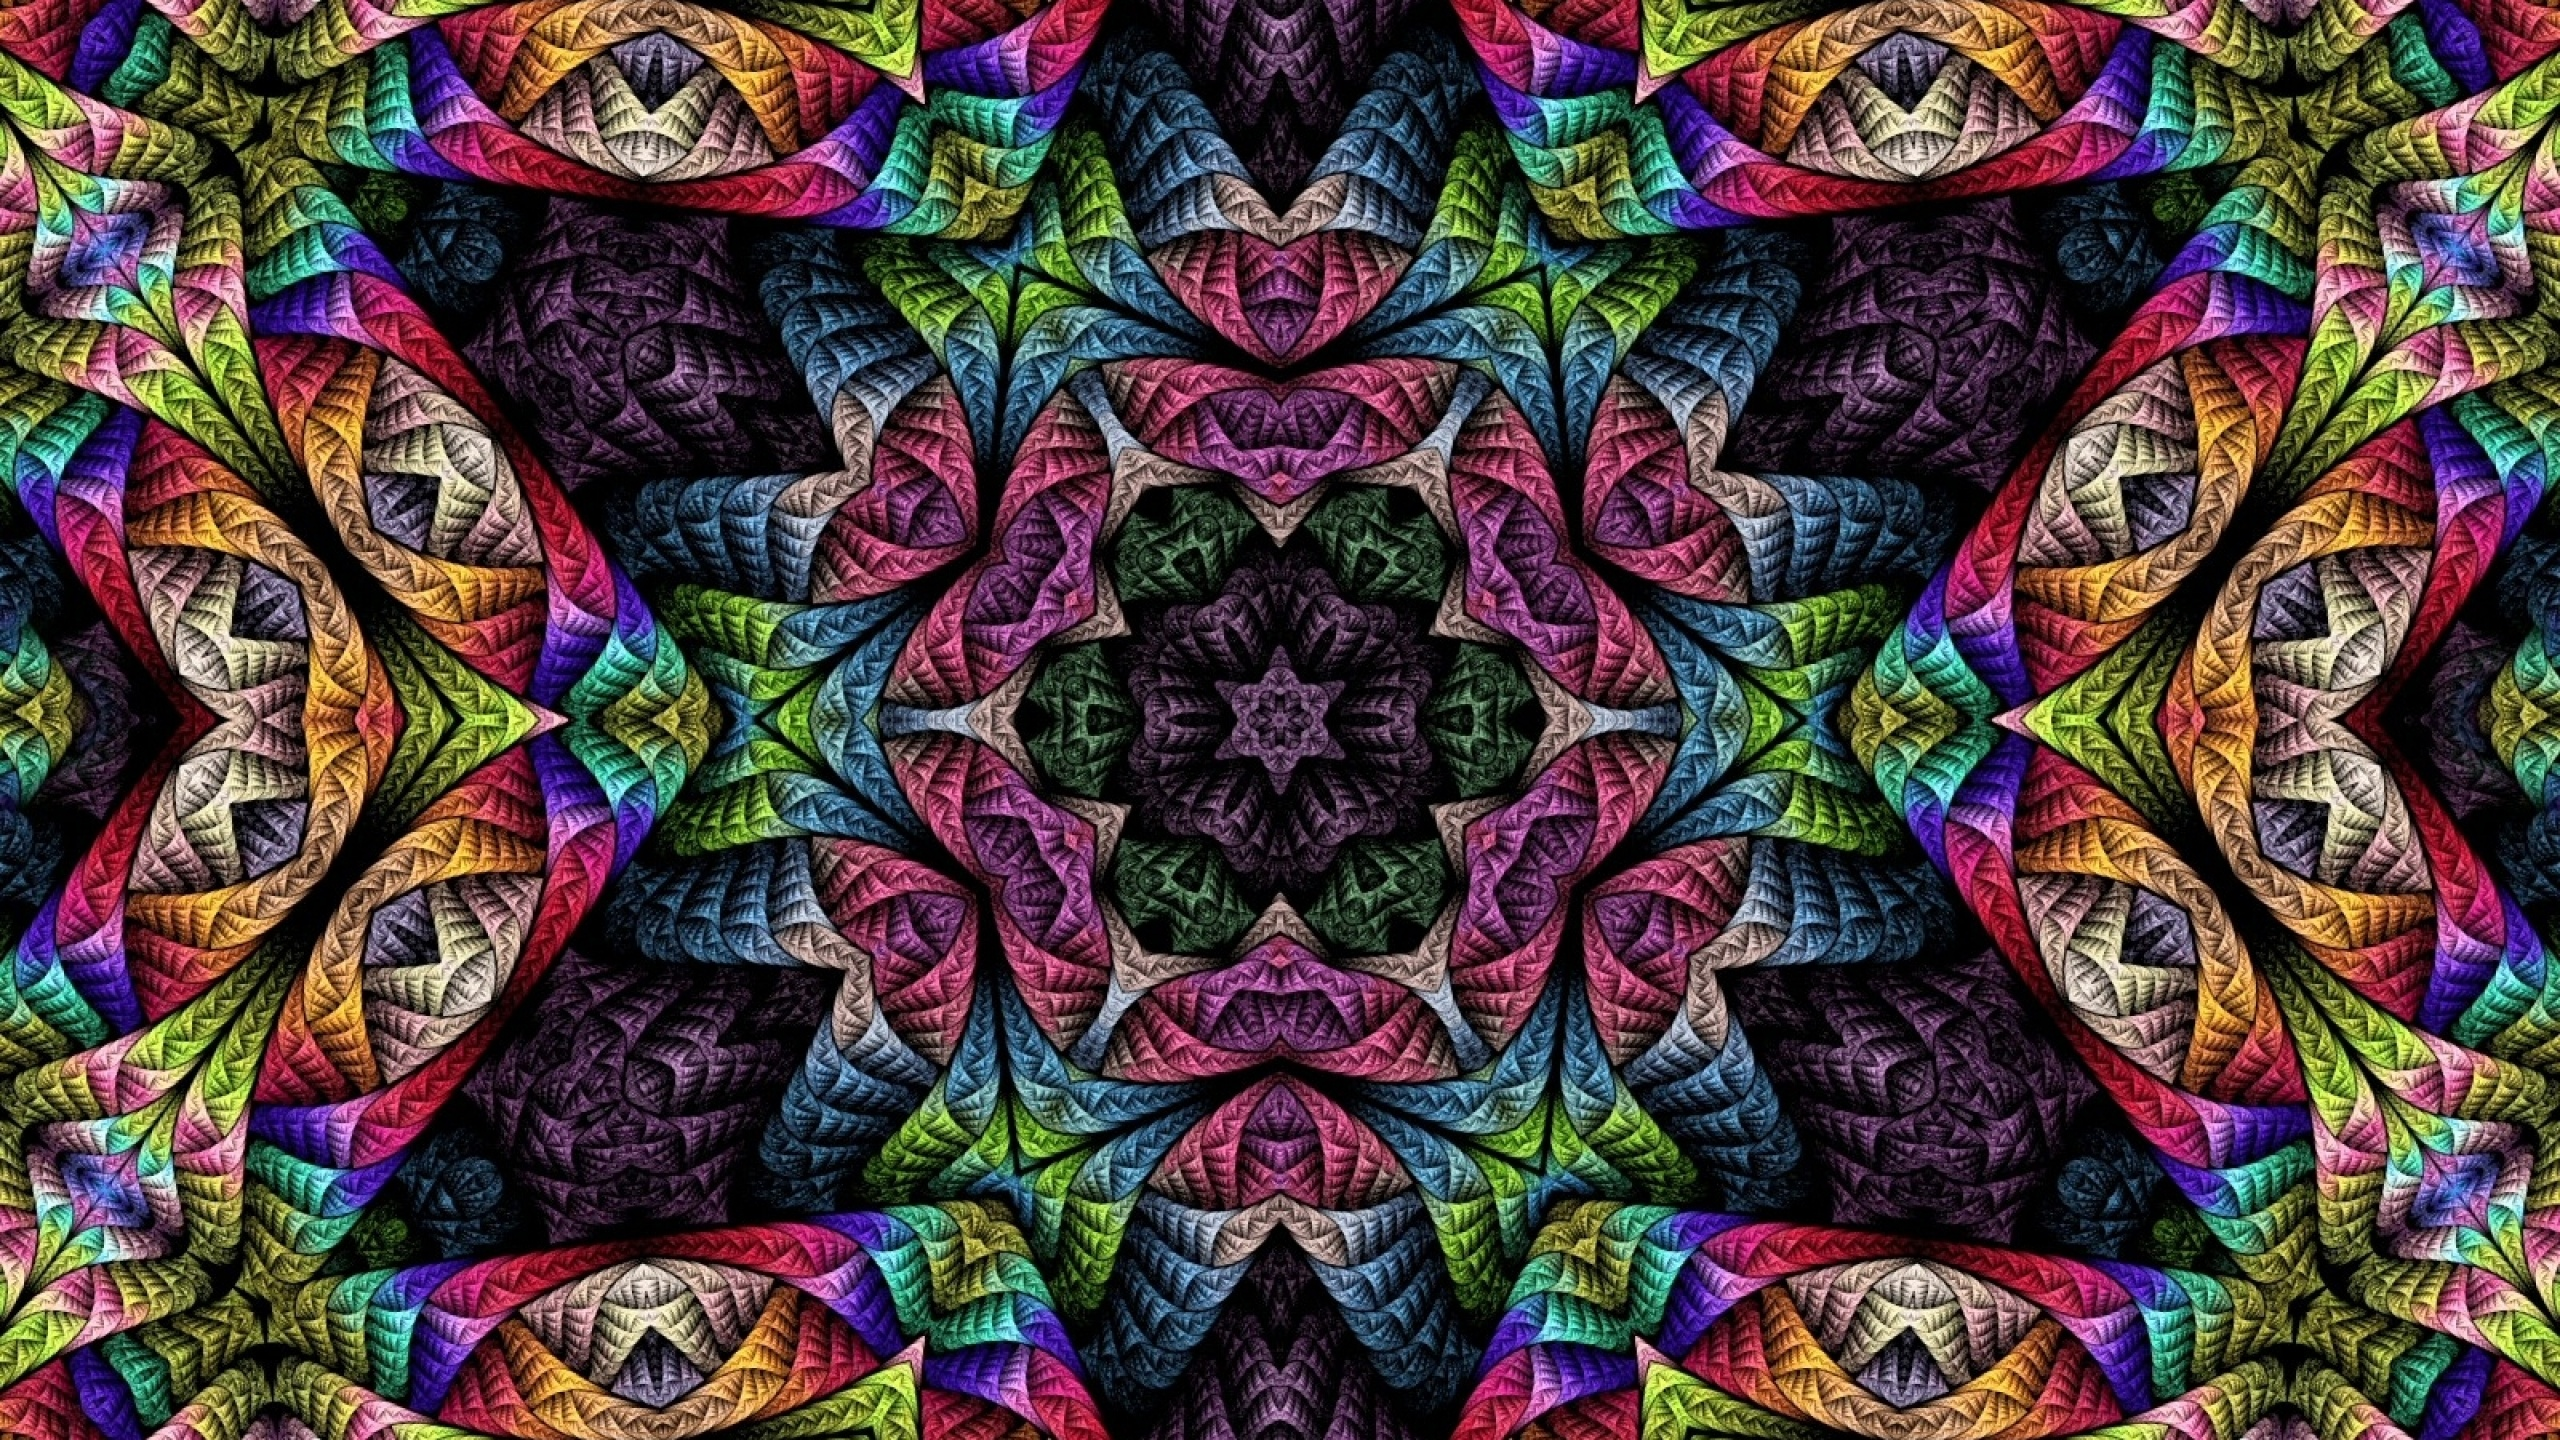 100 Psychedelic Wallpapers Hd Trippy Backgrounds 2016: 13 HD Psychedelic Wallpapers